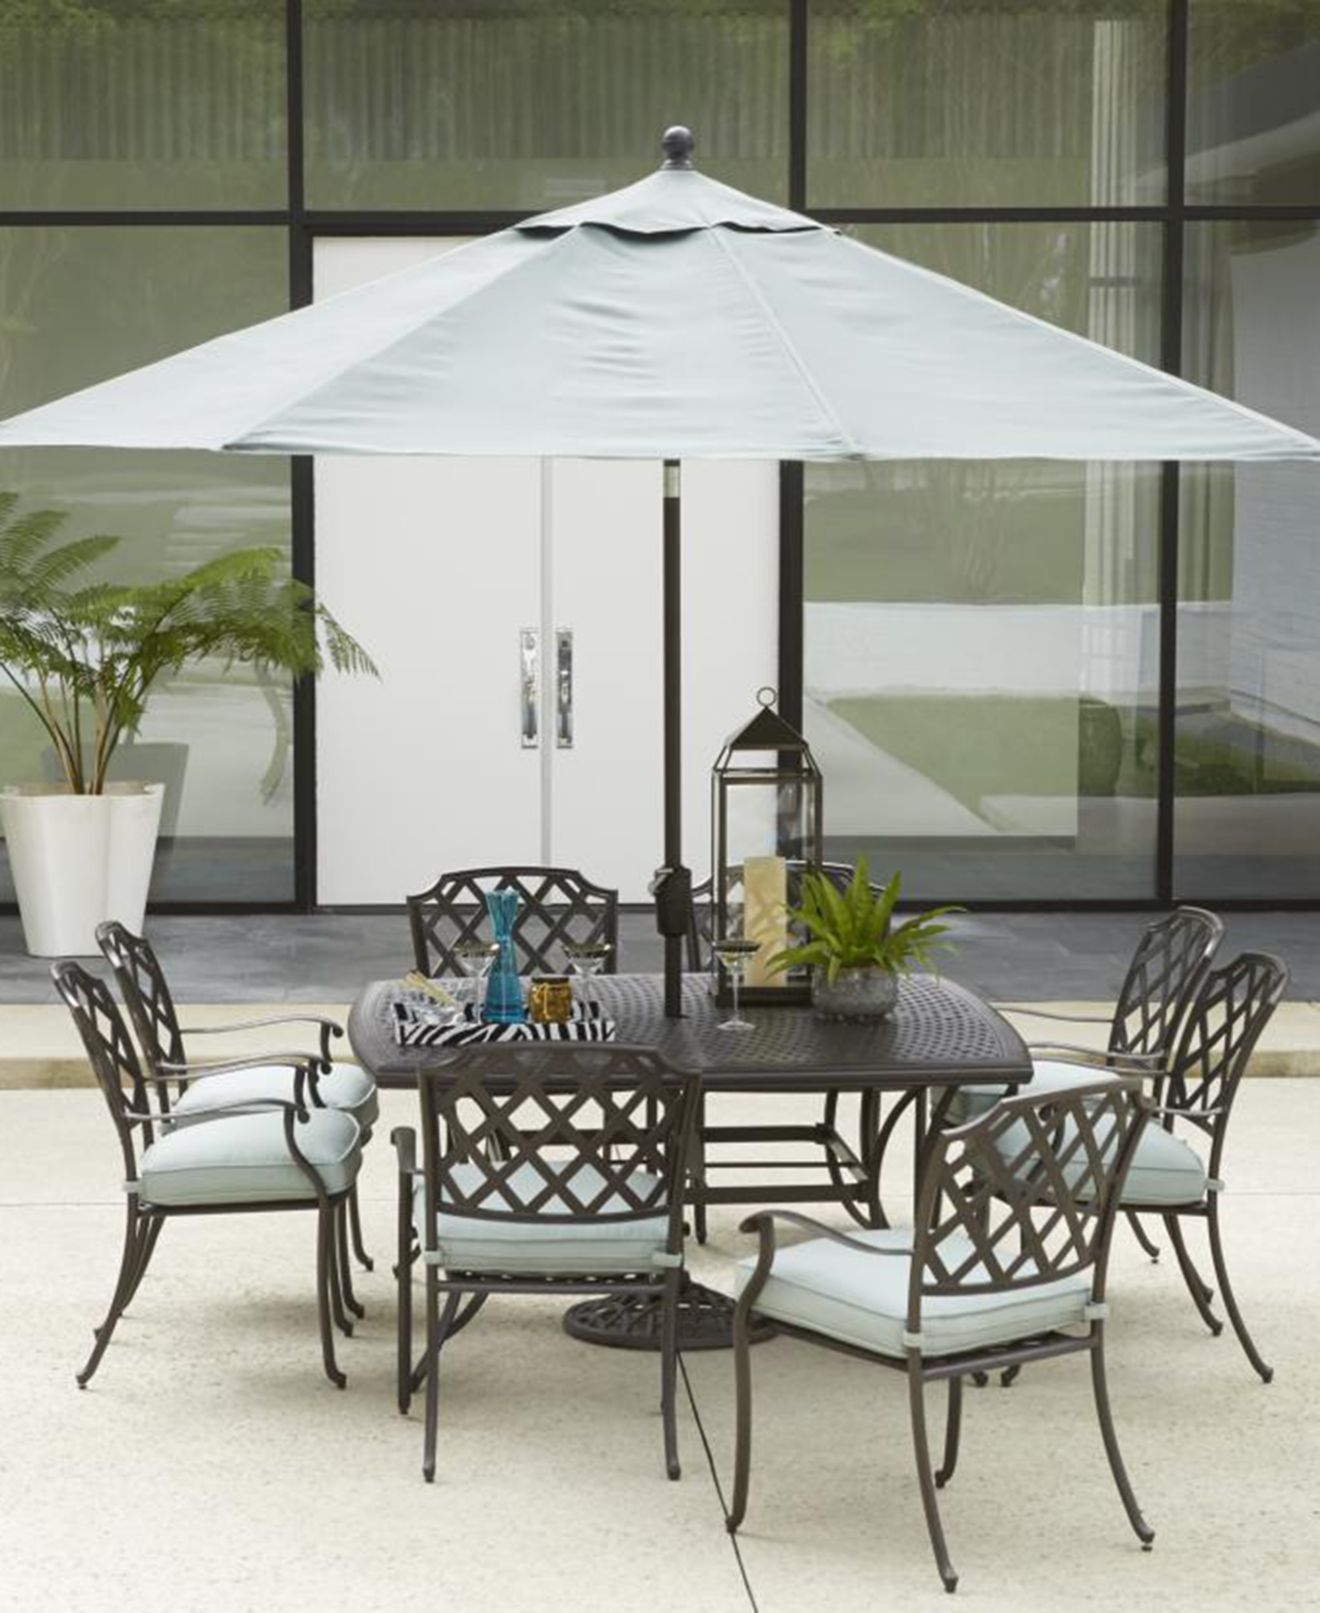 Garden Furniture Nottingham outdoor patio furniture - macy's